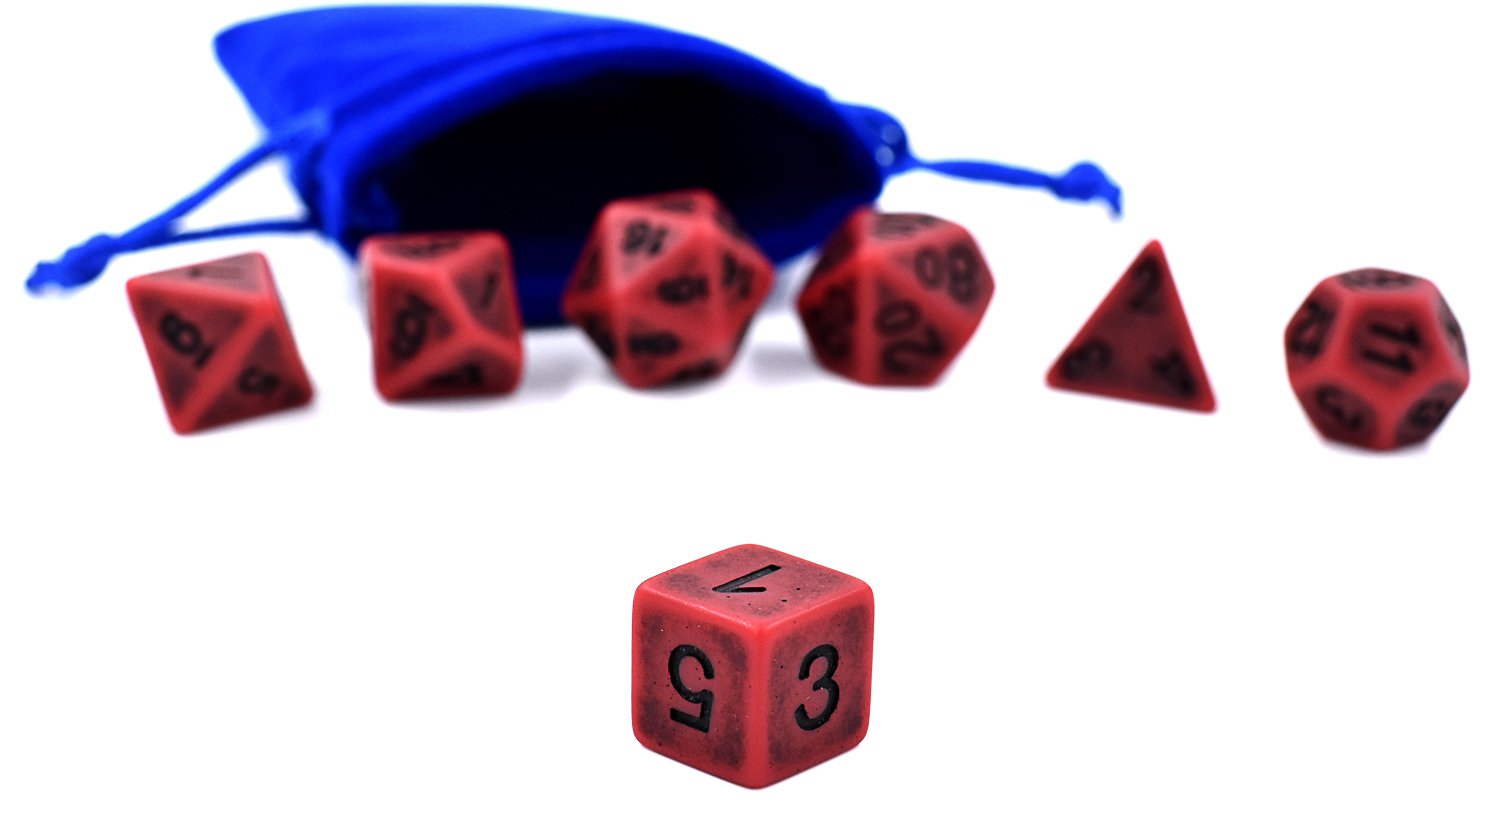 Hengda dice DND Dice Polyhedral Dice Sets for D/&D Dungeons /& Dragons MTG Role Playing Game Dice Including Velvet Bags